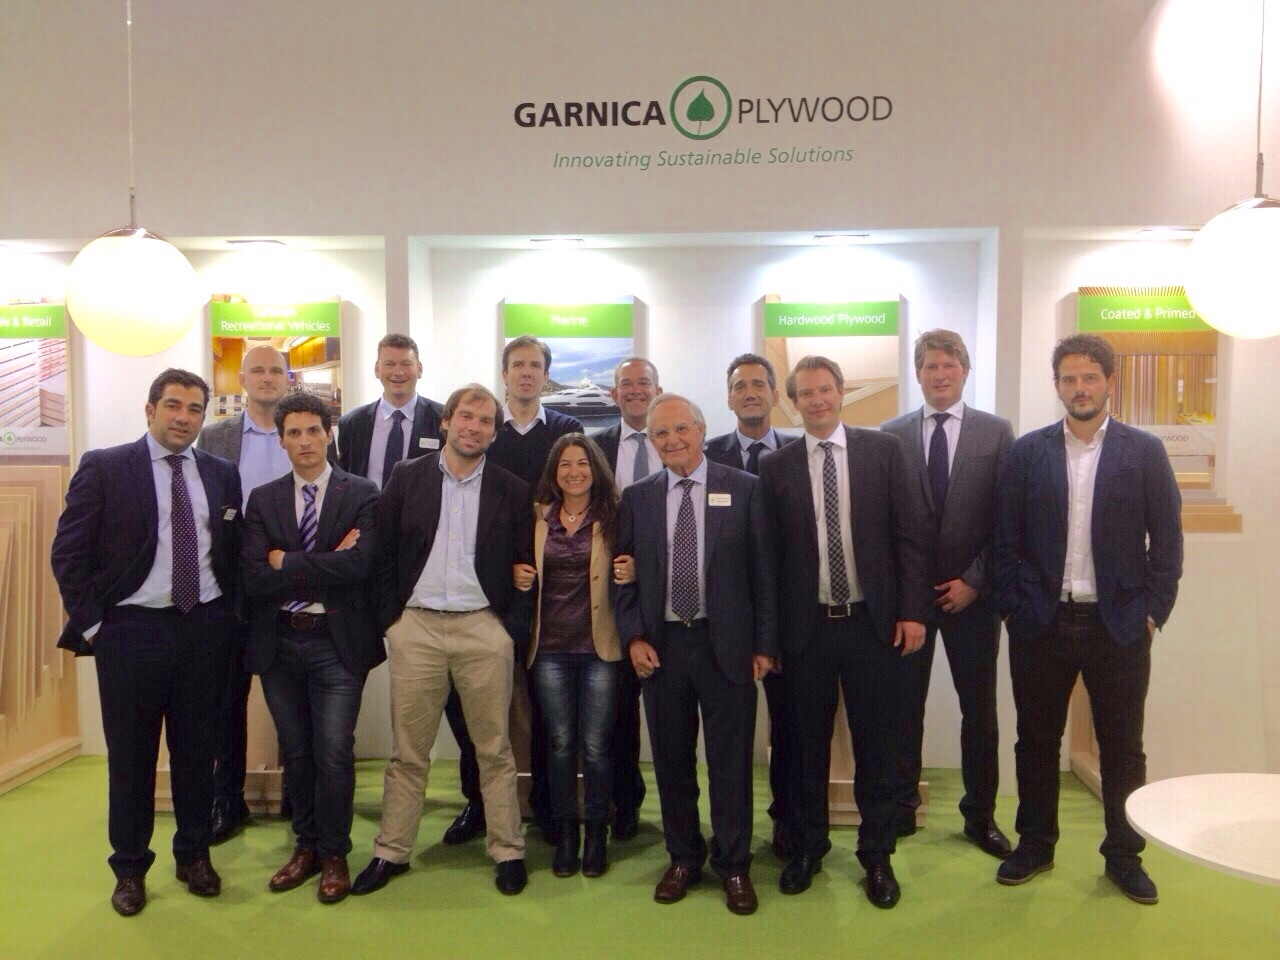 Garnica takes part in the Interzum 2015 Trade Fair in Cologne